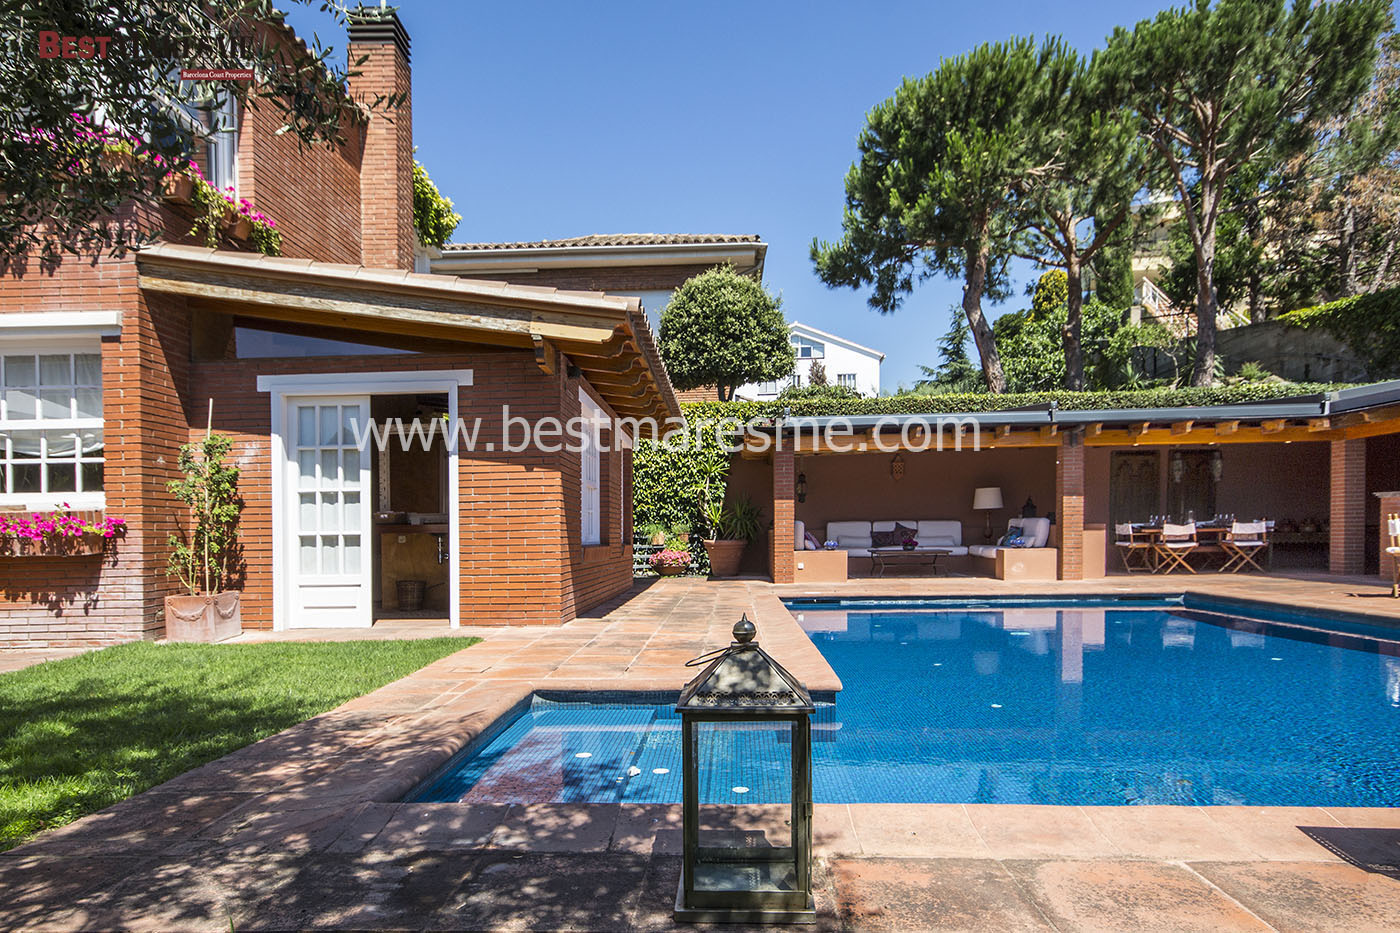 Piscina y zona chill-out